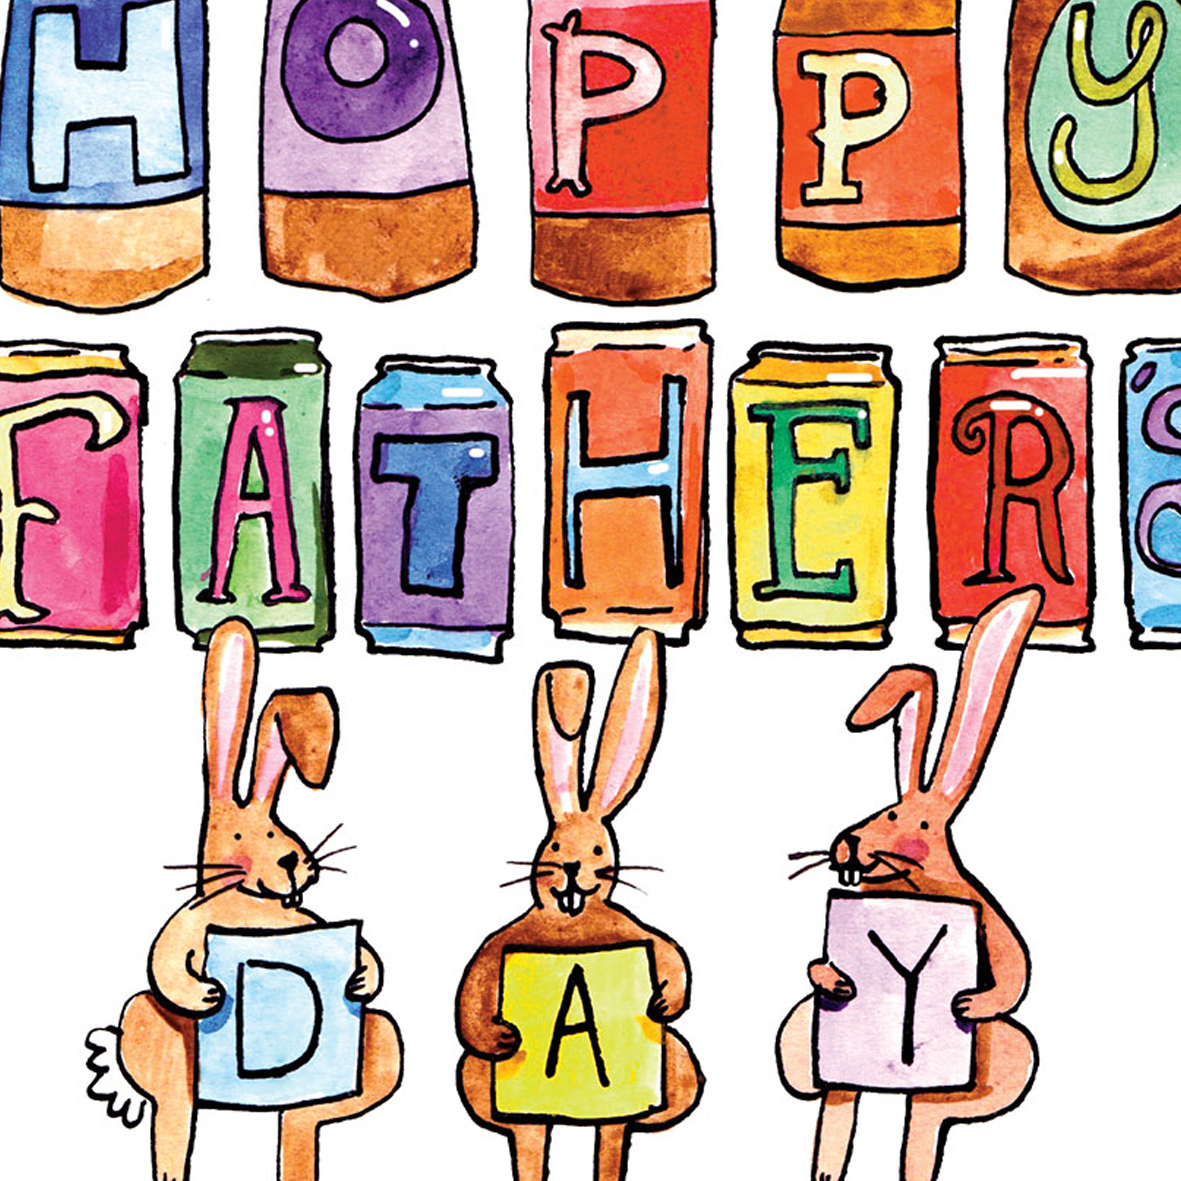 Hoppy-Fathers-Day_-Beer-or-ale-themed-Fathers-Day-Card-for-beer-and-IPA-enthusiasts_FD06_CU